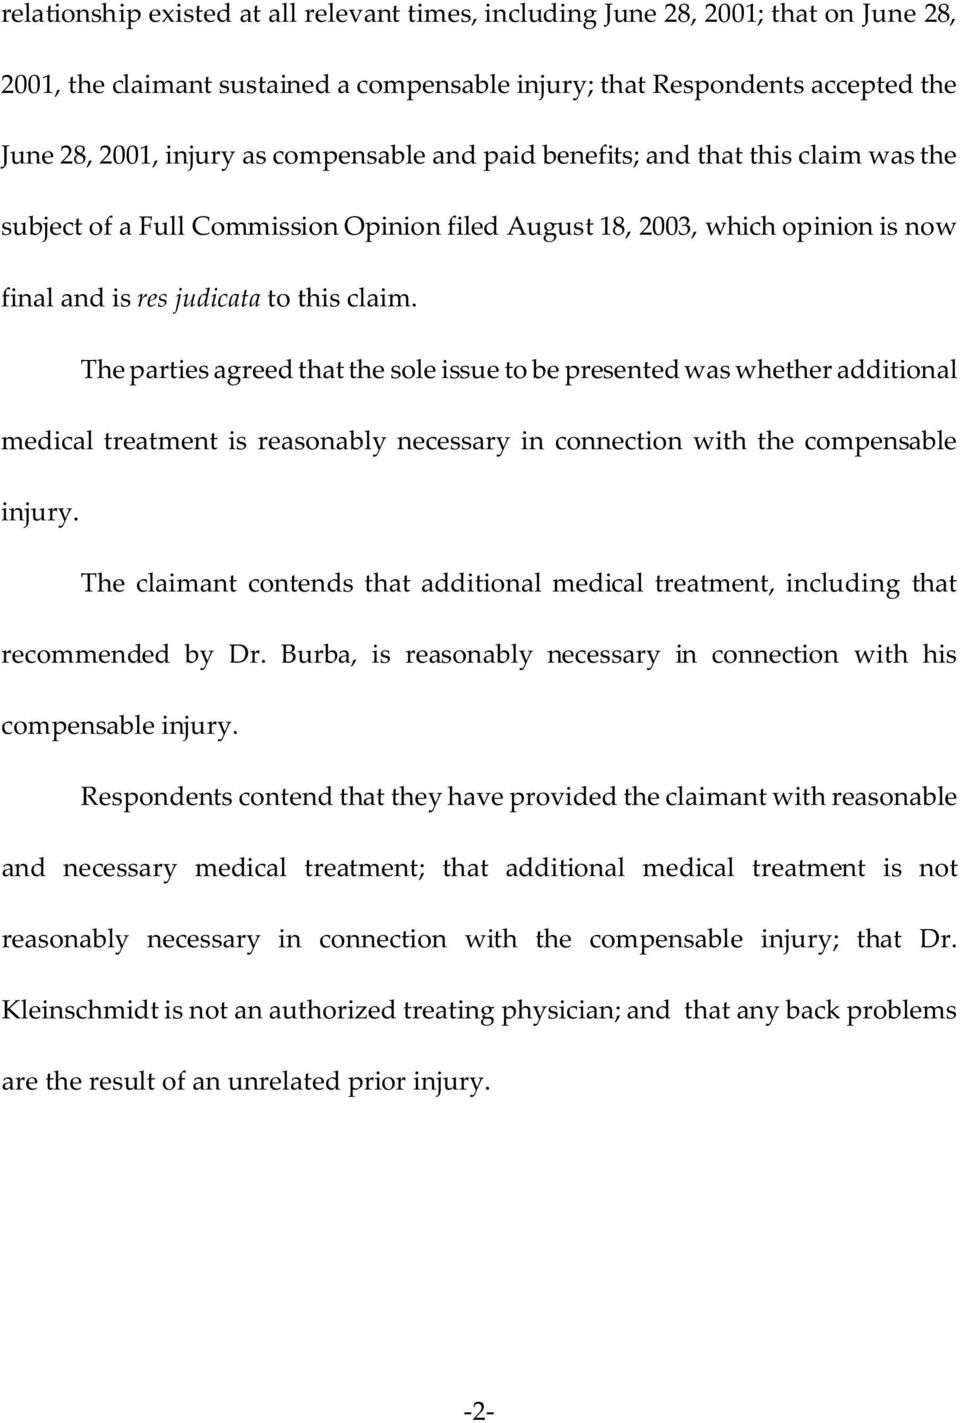 The parties agreed that the sole issue to be presented was whether additional medical treatment is reasonably necessary in connection with the compensable injury.